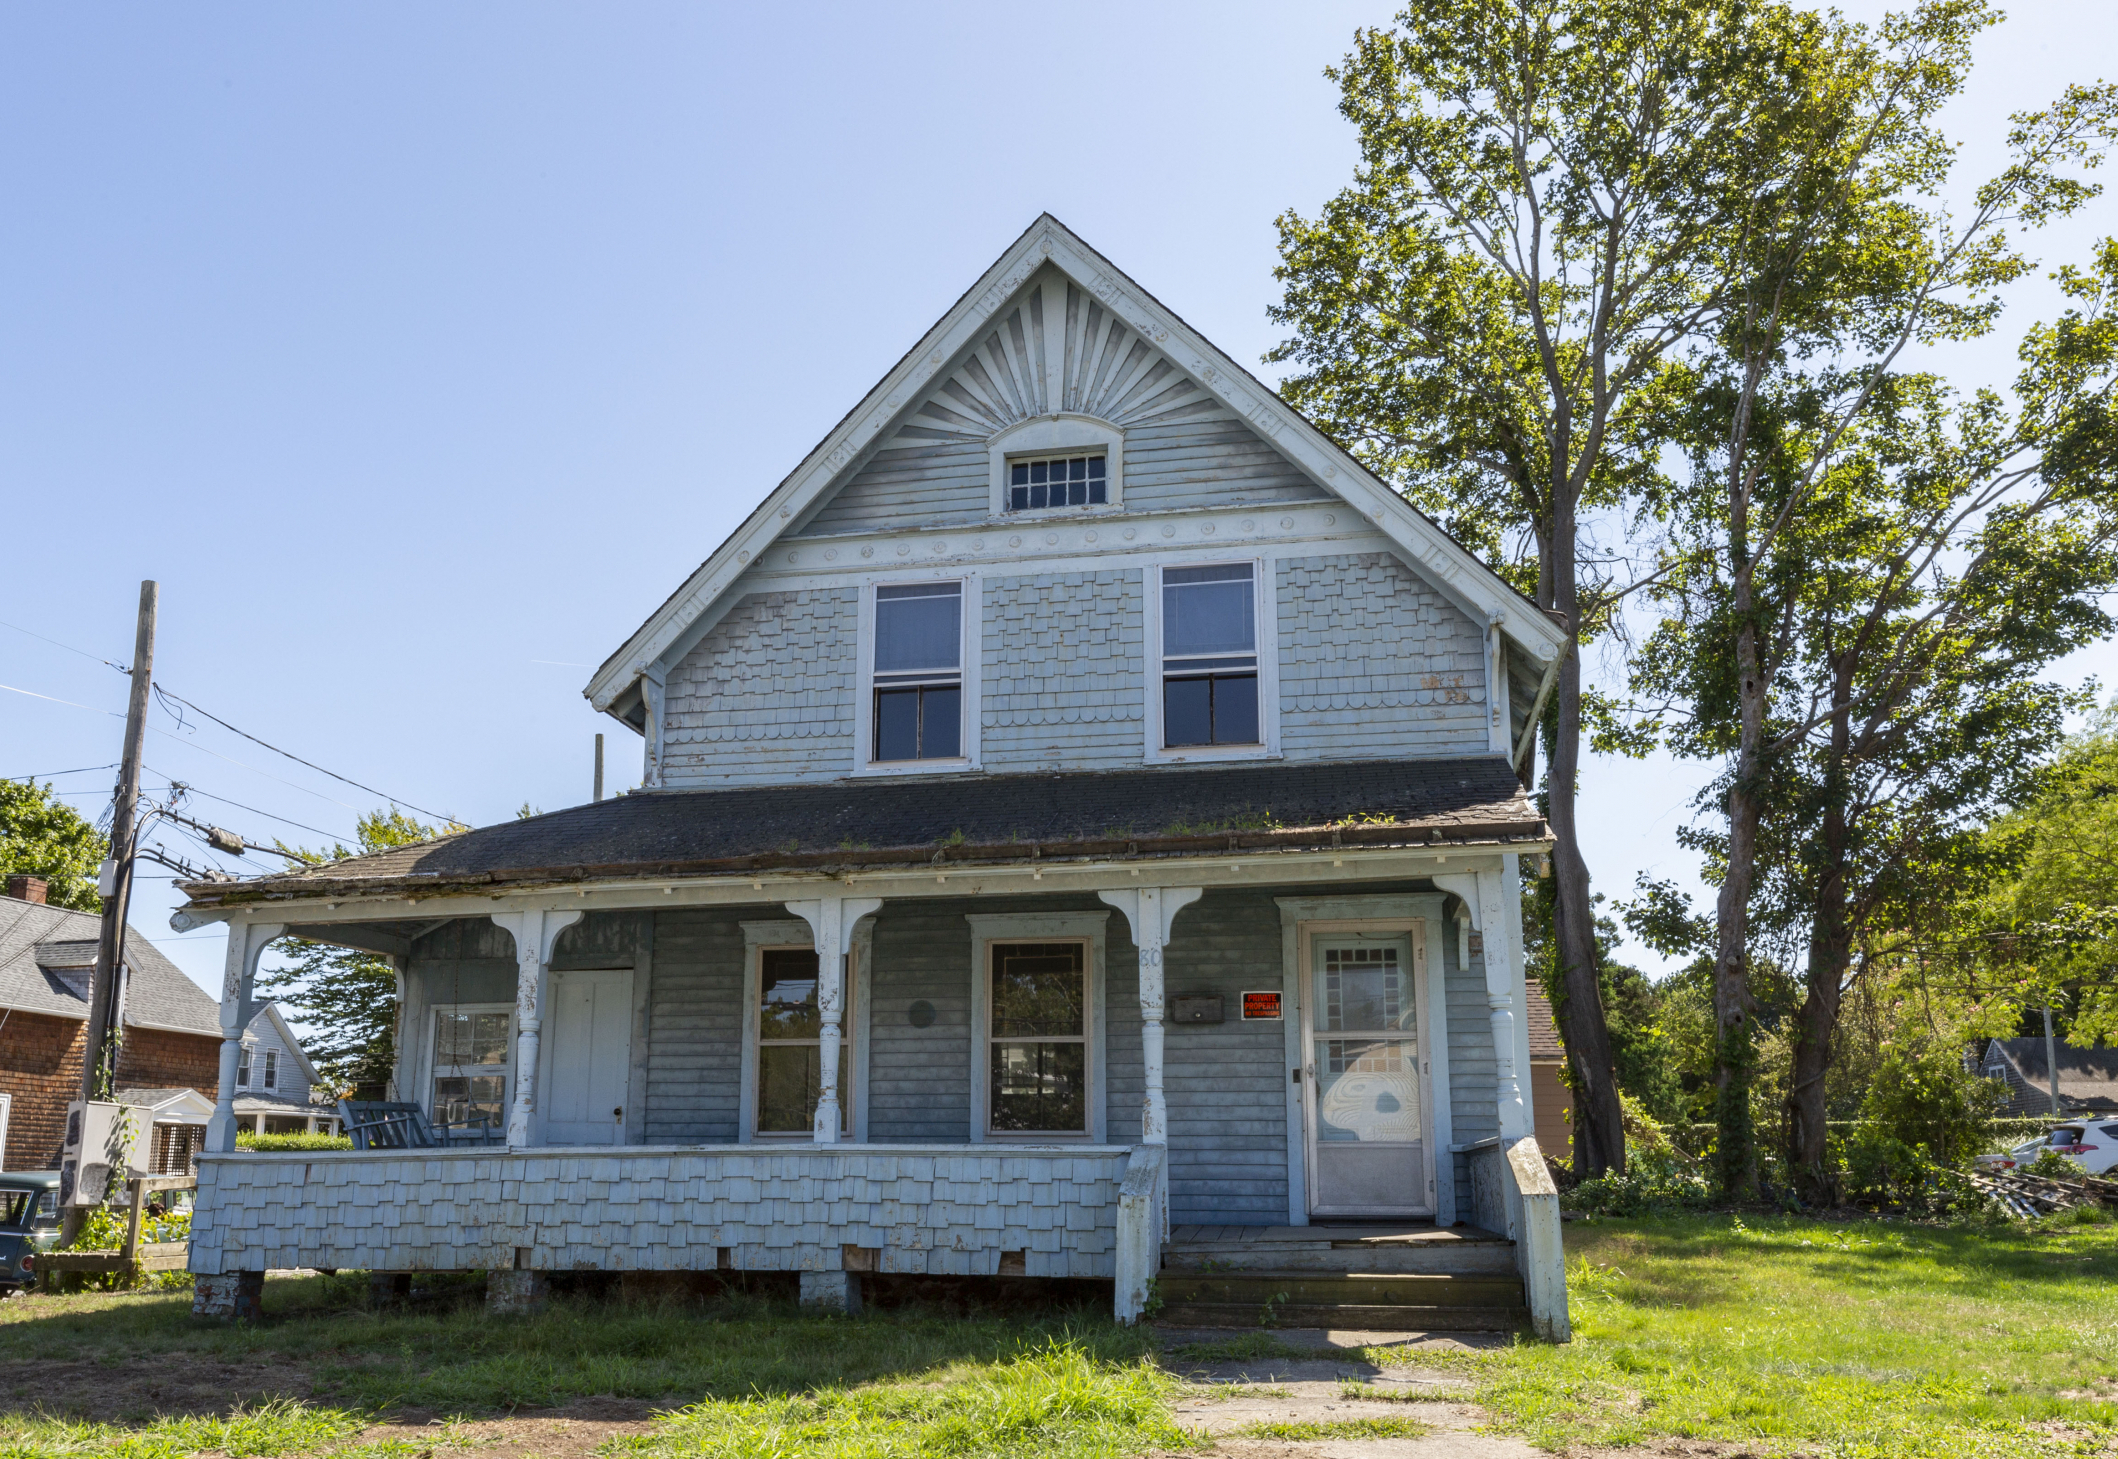 PBS set to profile local home's restoration on 'This Old House'